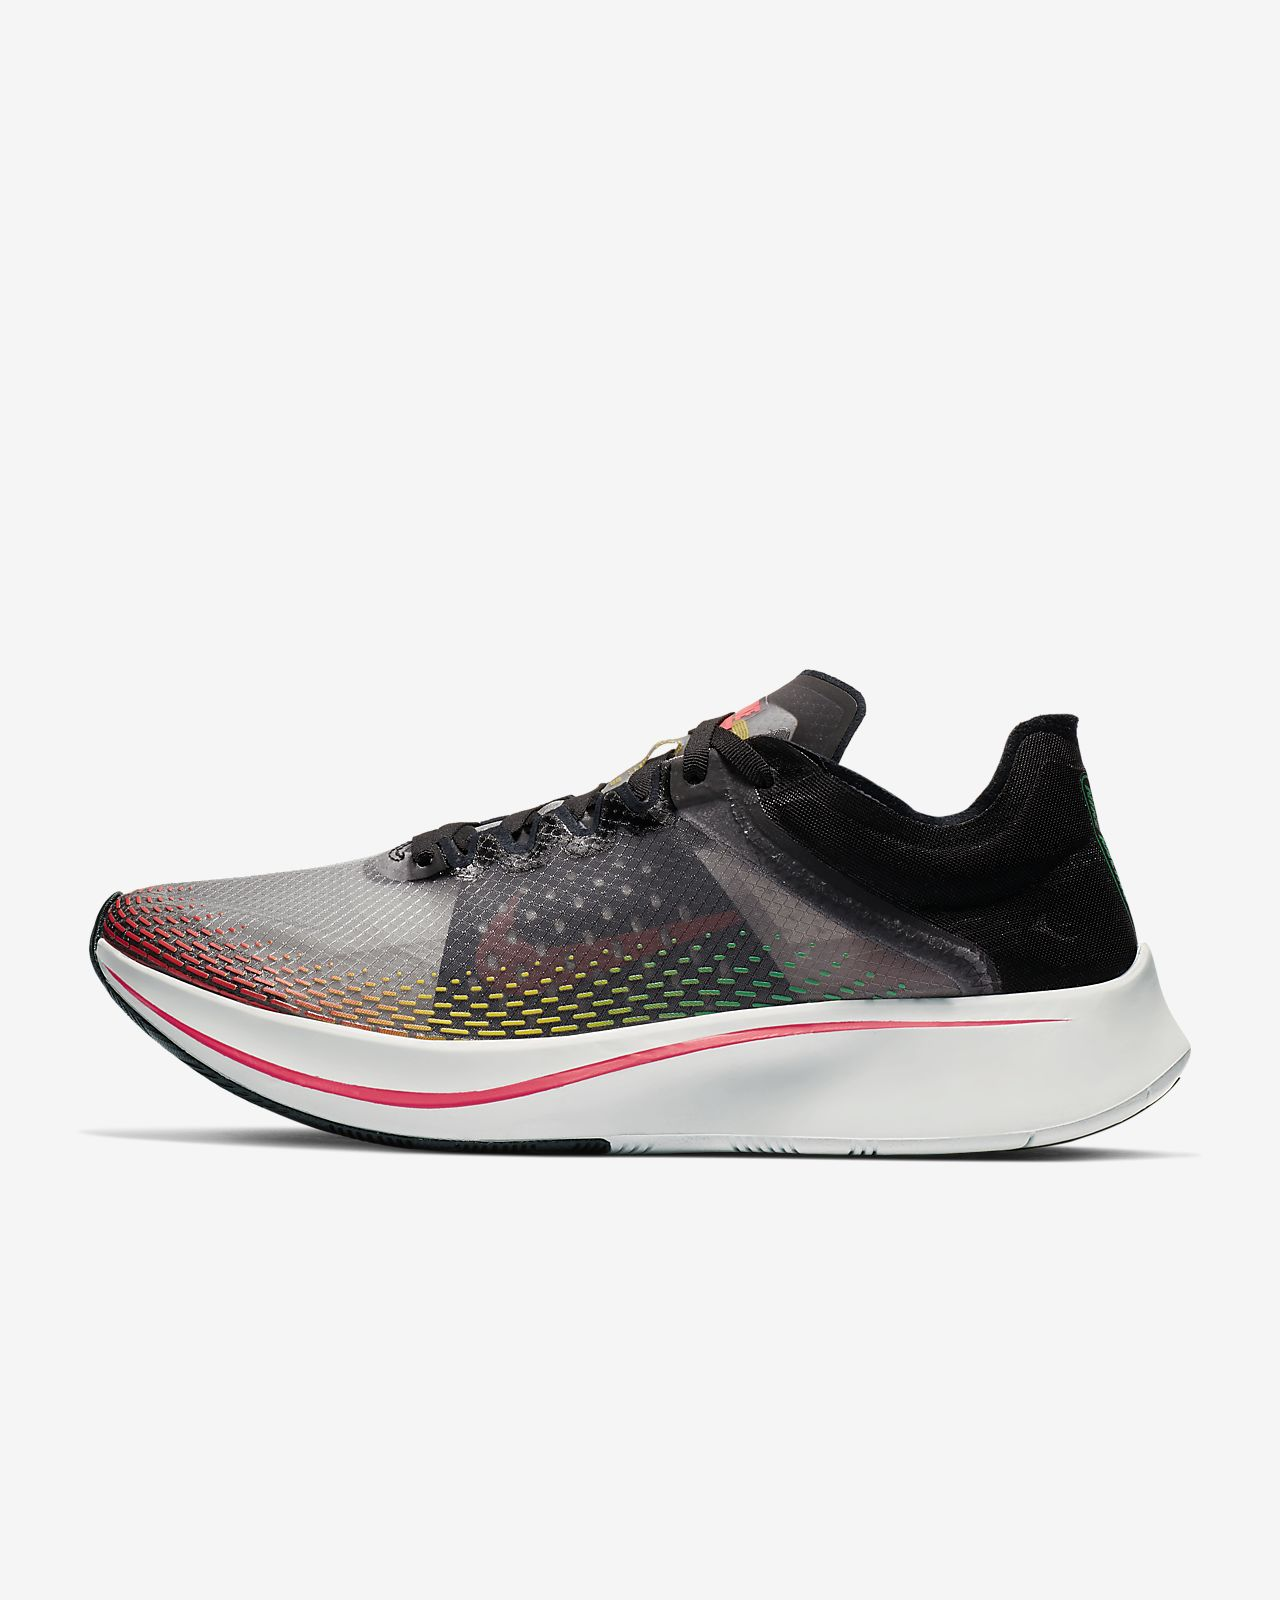 2d262a2e1861 Nike Zoom Fly SP Fast Running Shoe. Nike.com